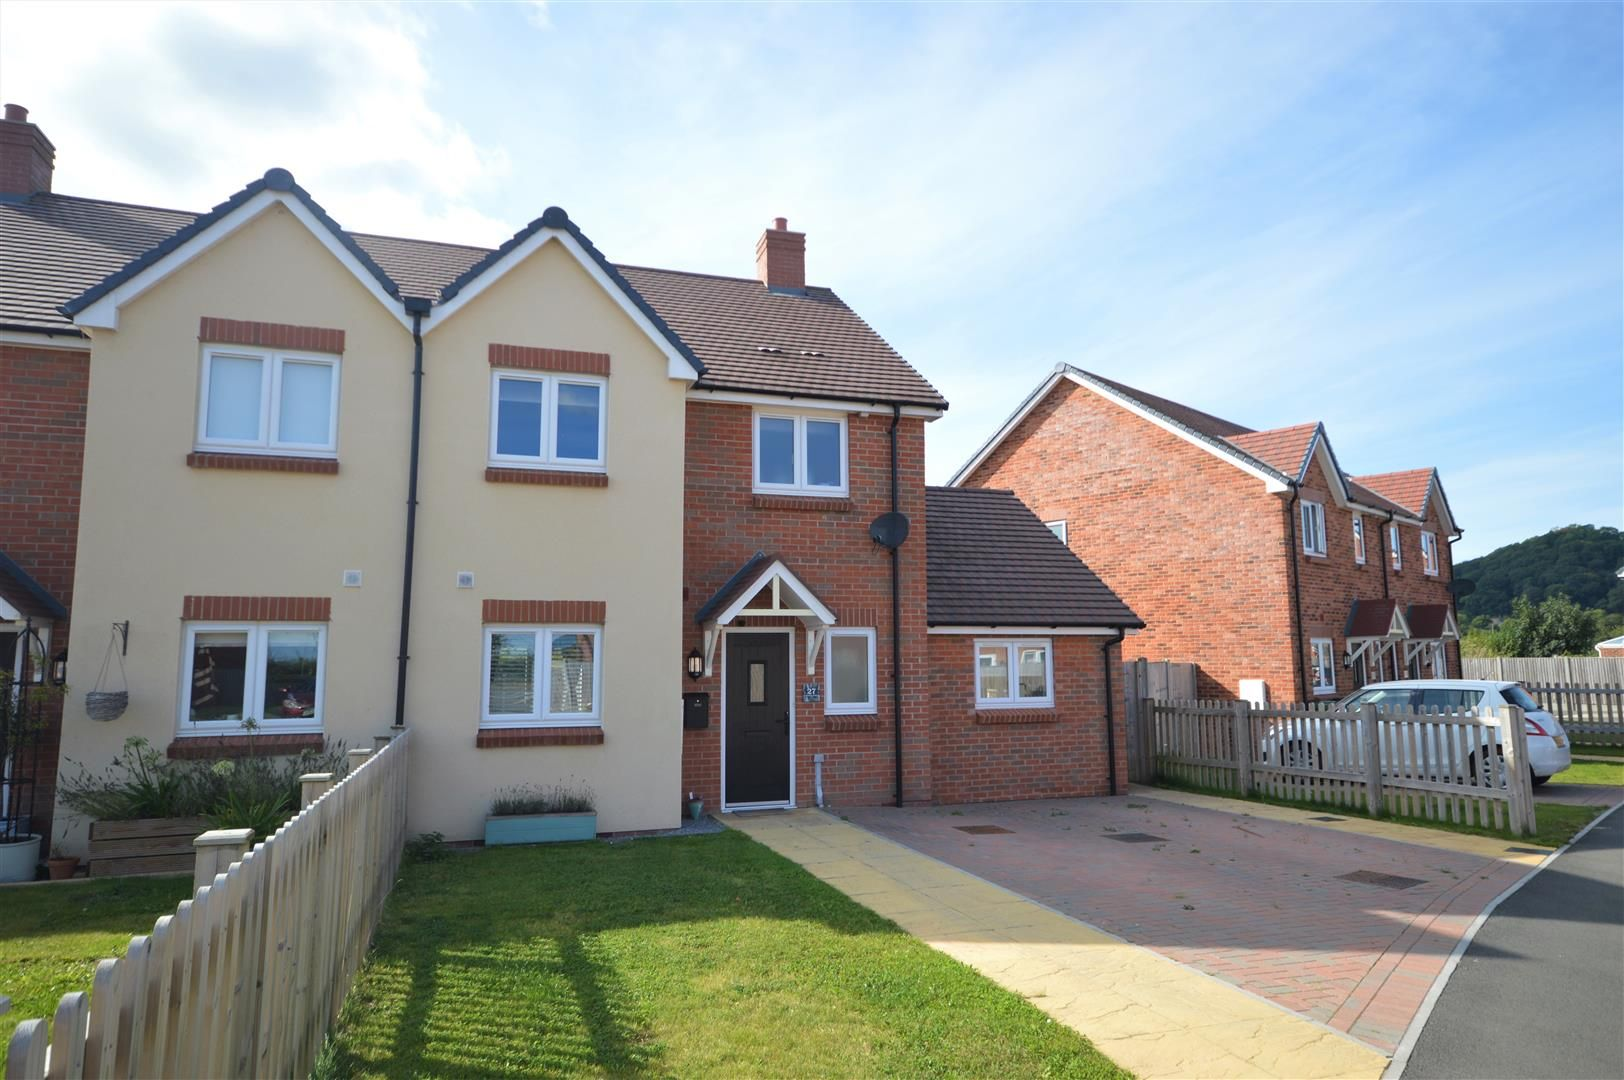 3 bed semi-detached for sale in Canon Pyon, HR4